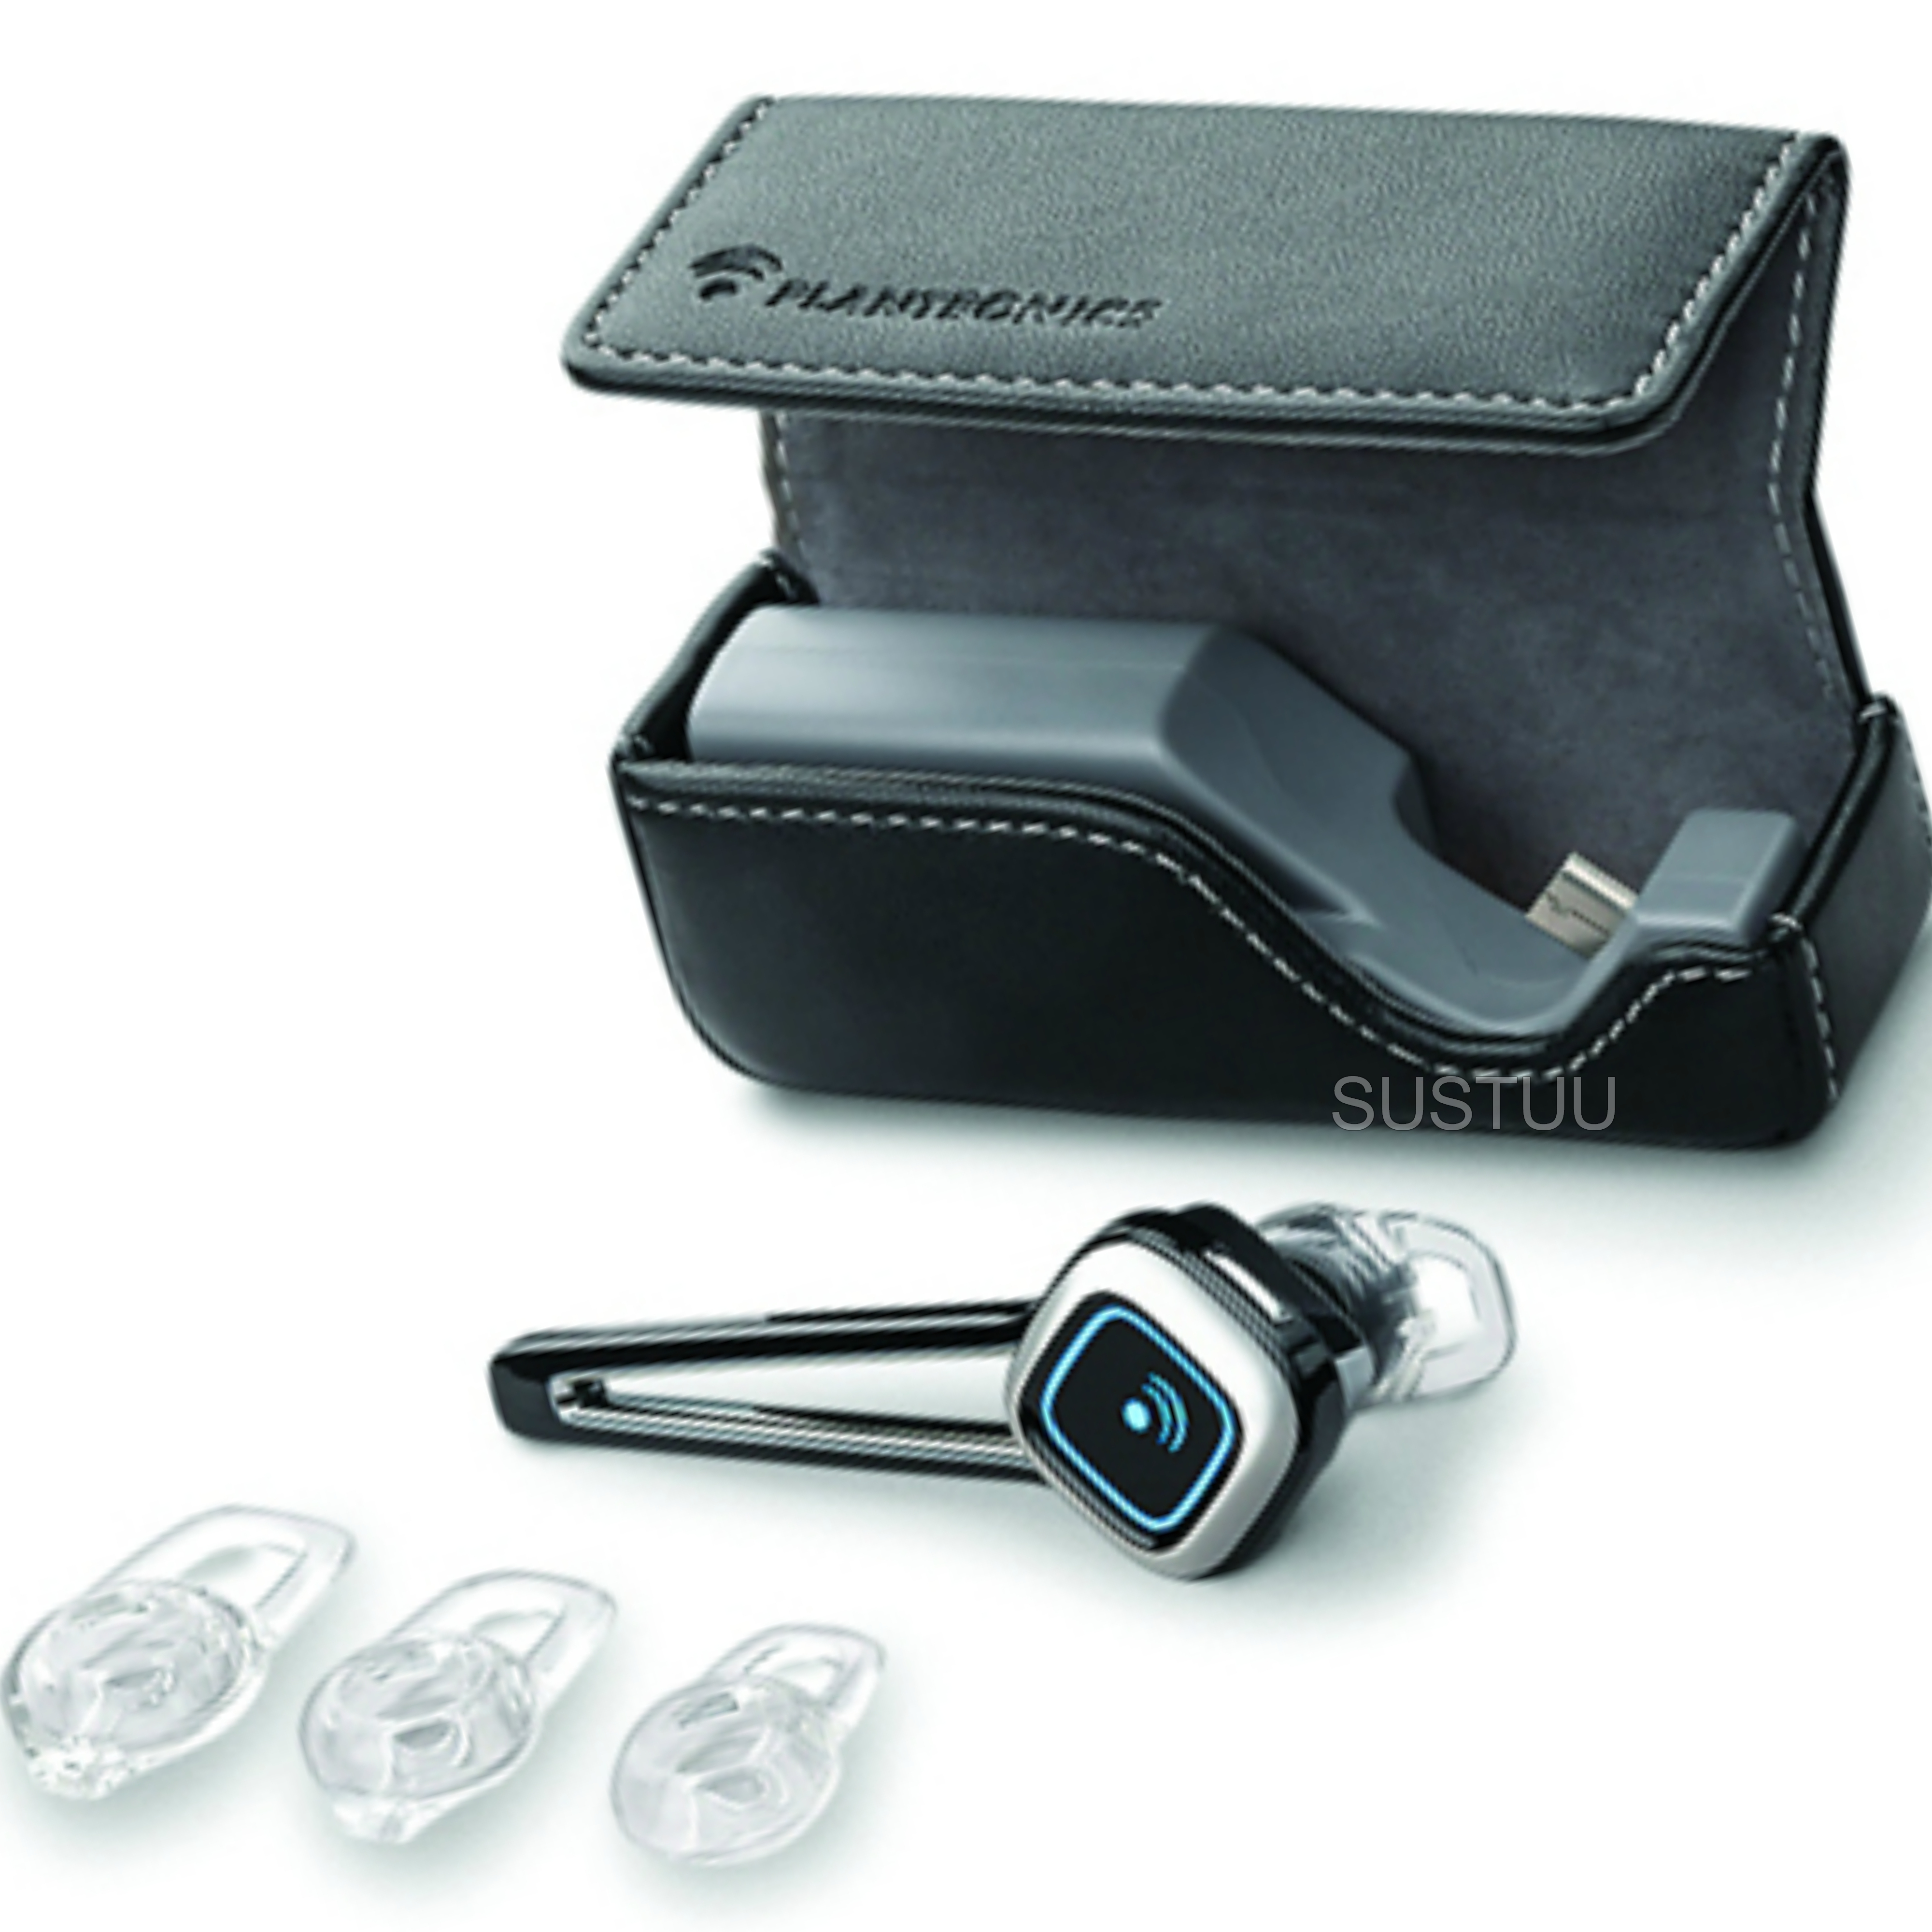 Plantronics Replacement Spare Ear Tip/Plug Kit | Discovery 925 975 Headsets | 38480-01